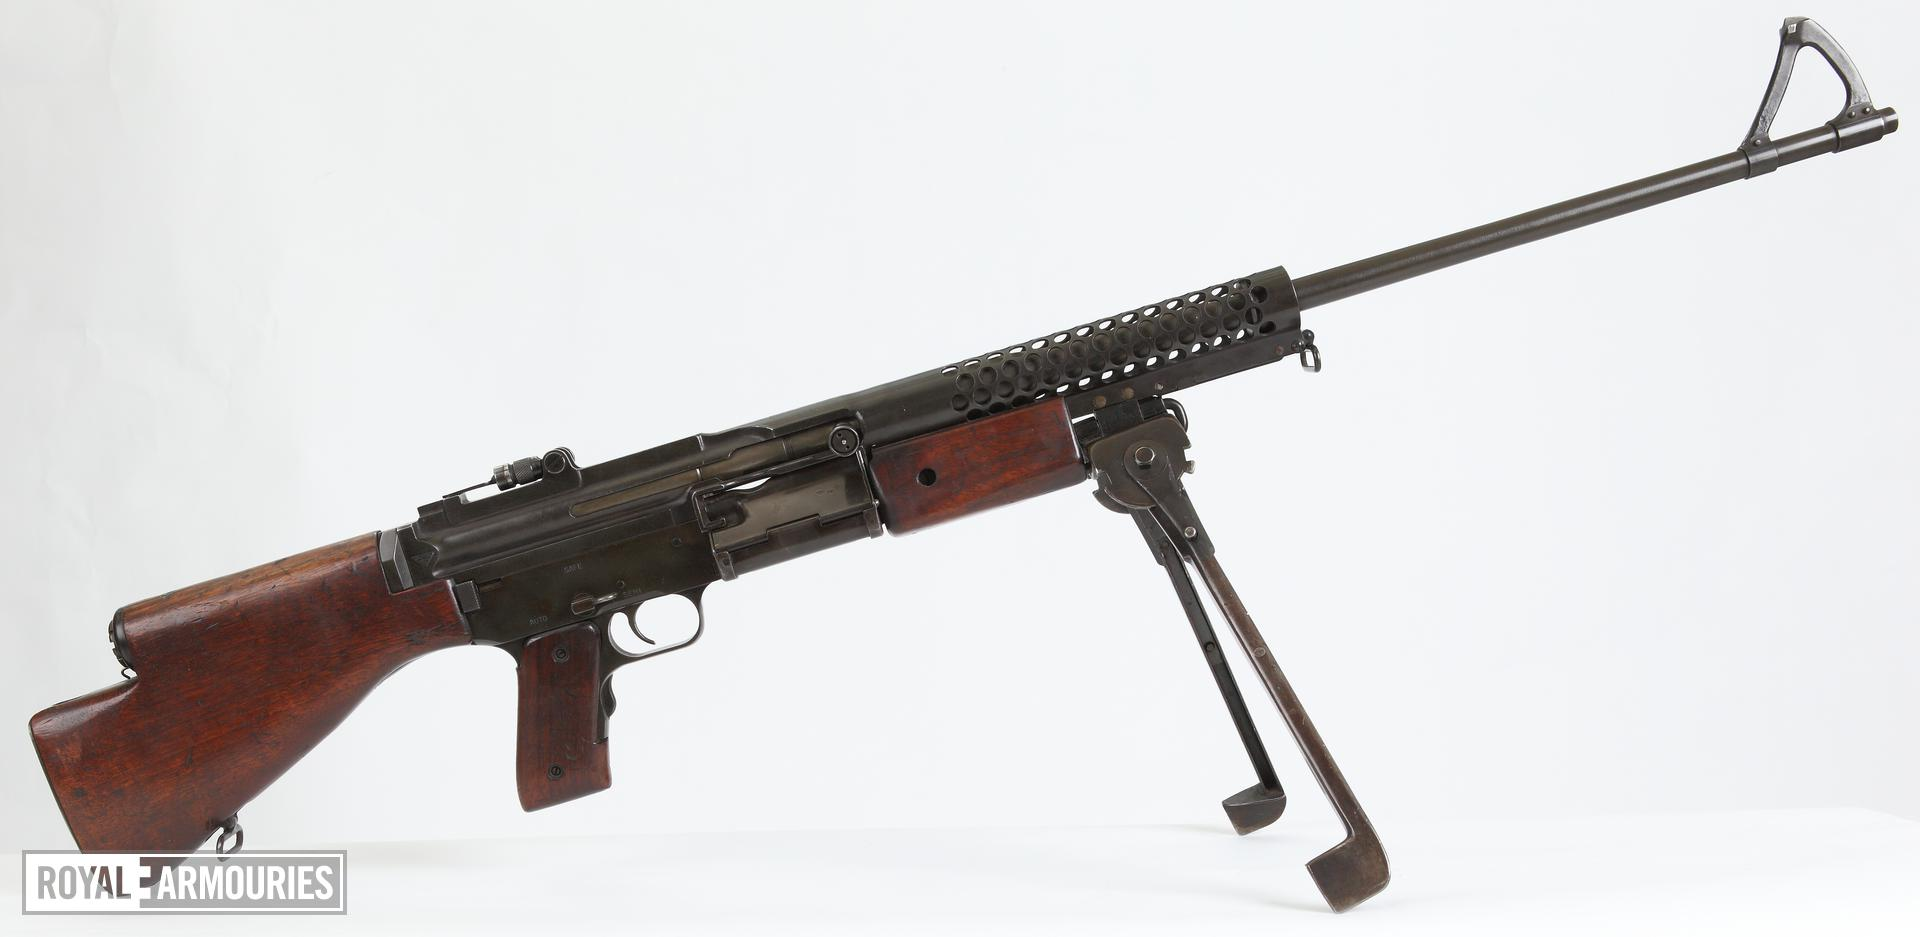 Johnson M1941 LMG (Light Machine Gun). Recoil operated machine gun manufactured by Johnson, USA. (PR.7050)